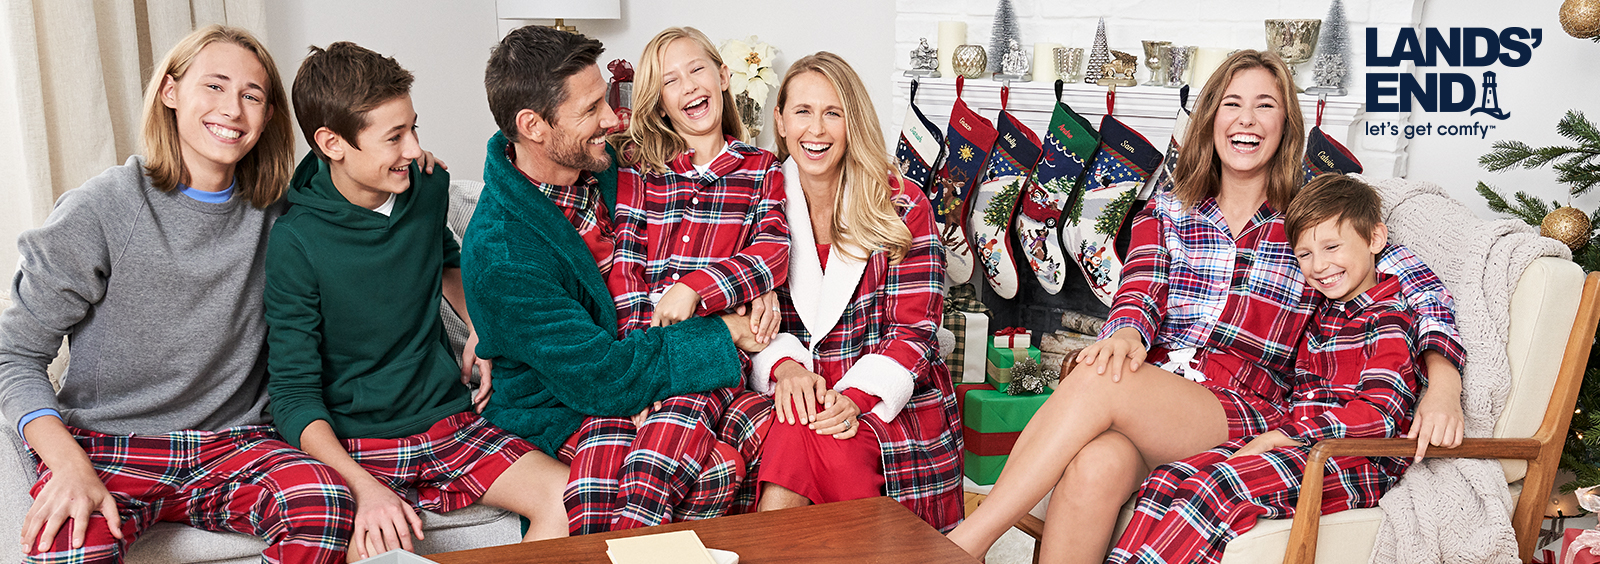 4 Ways to Spend the Day in Matching Family PJs